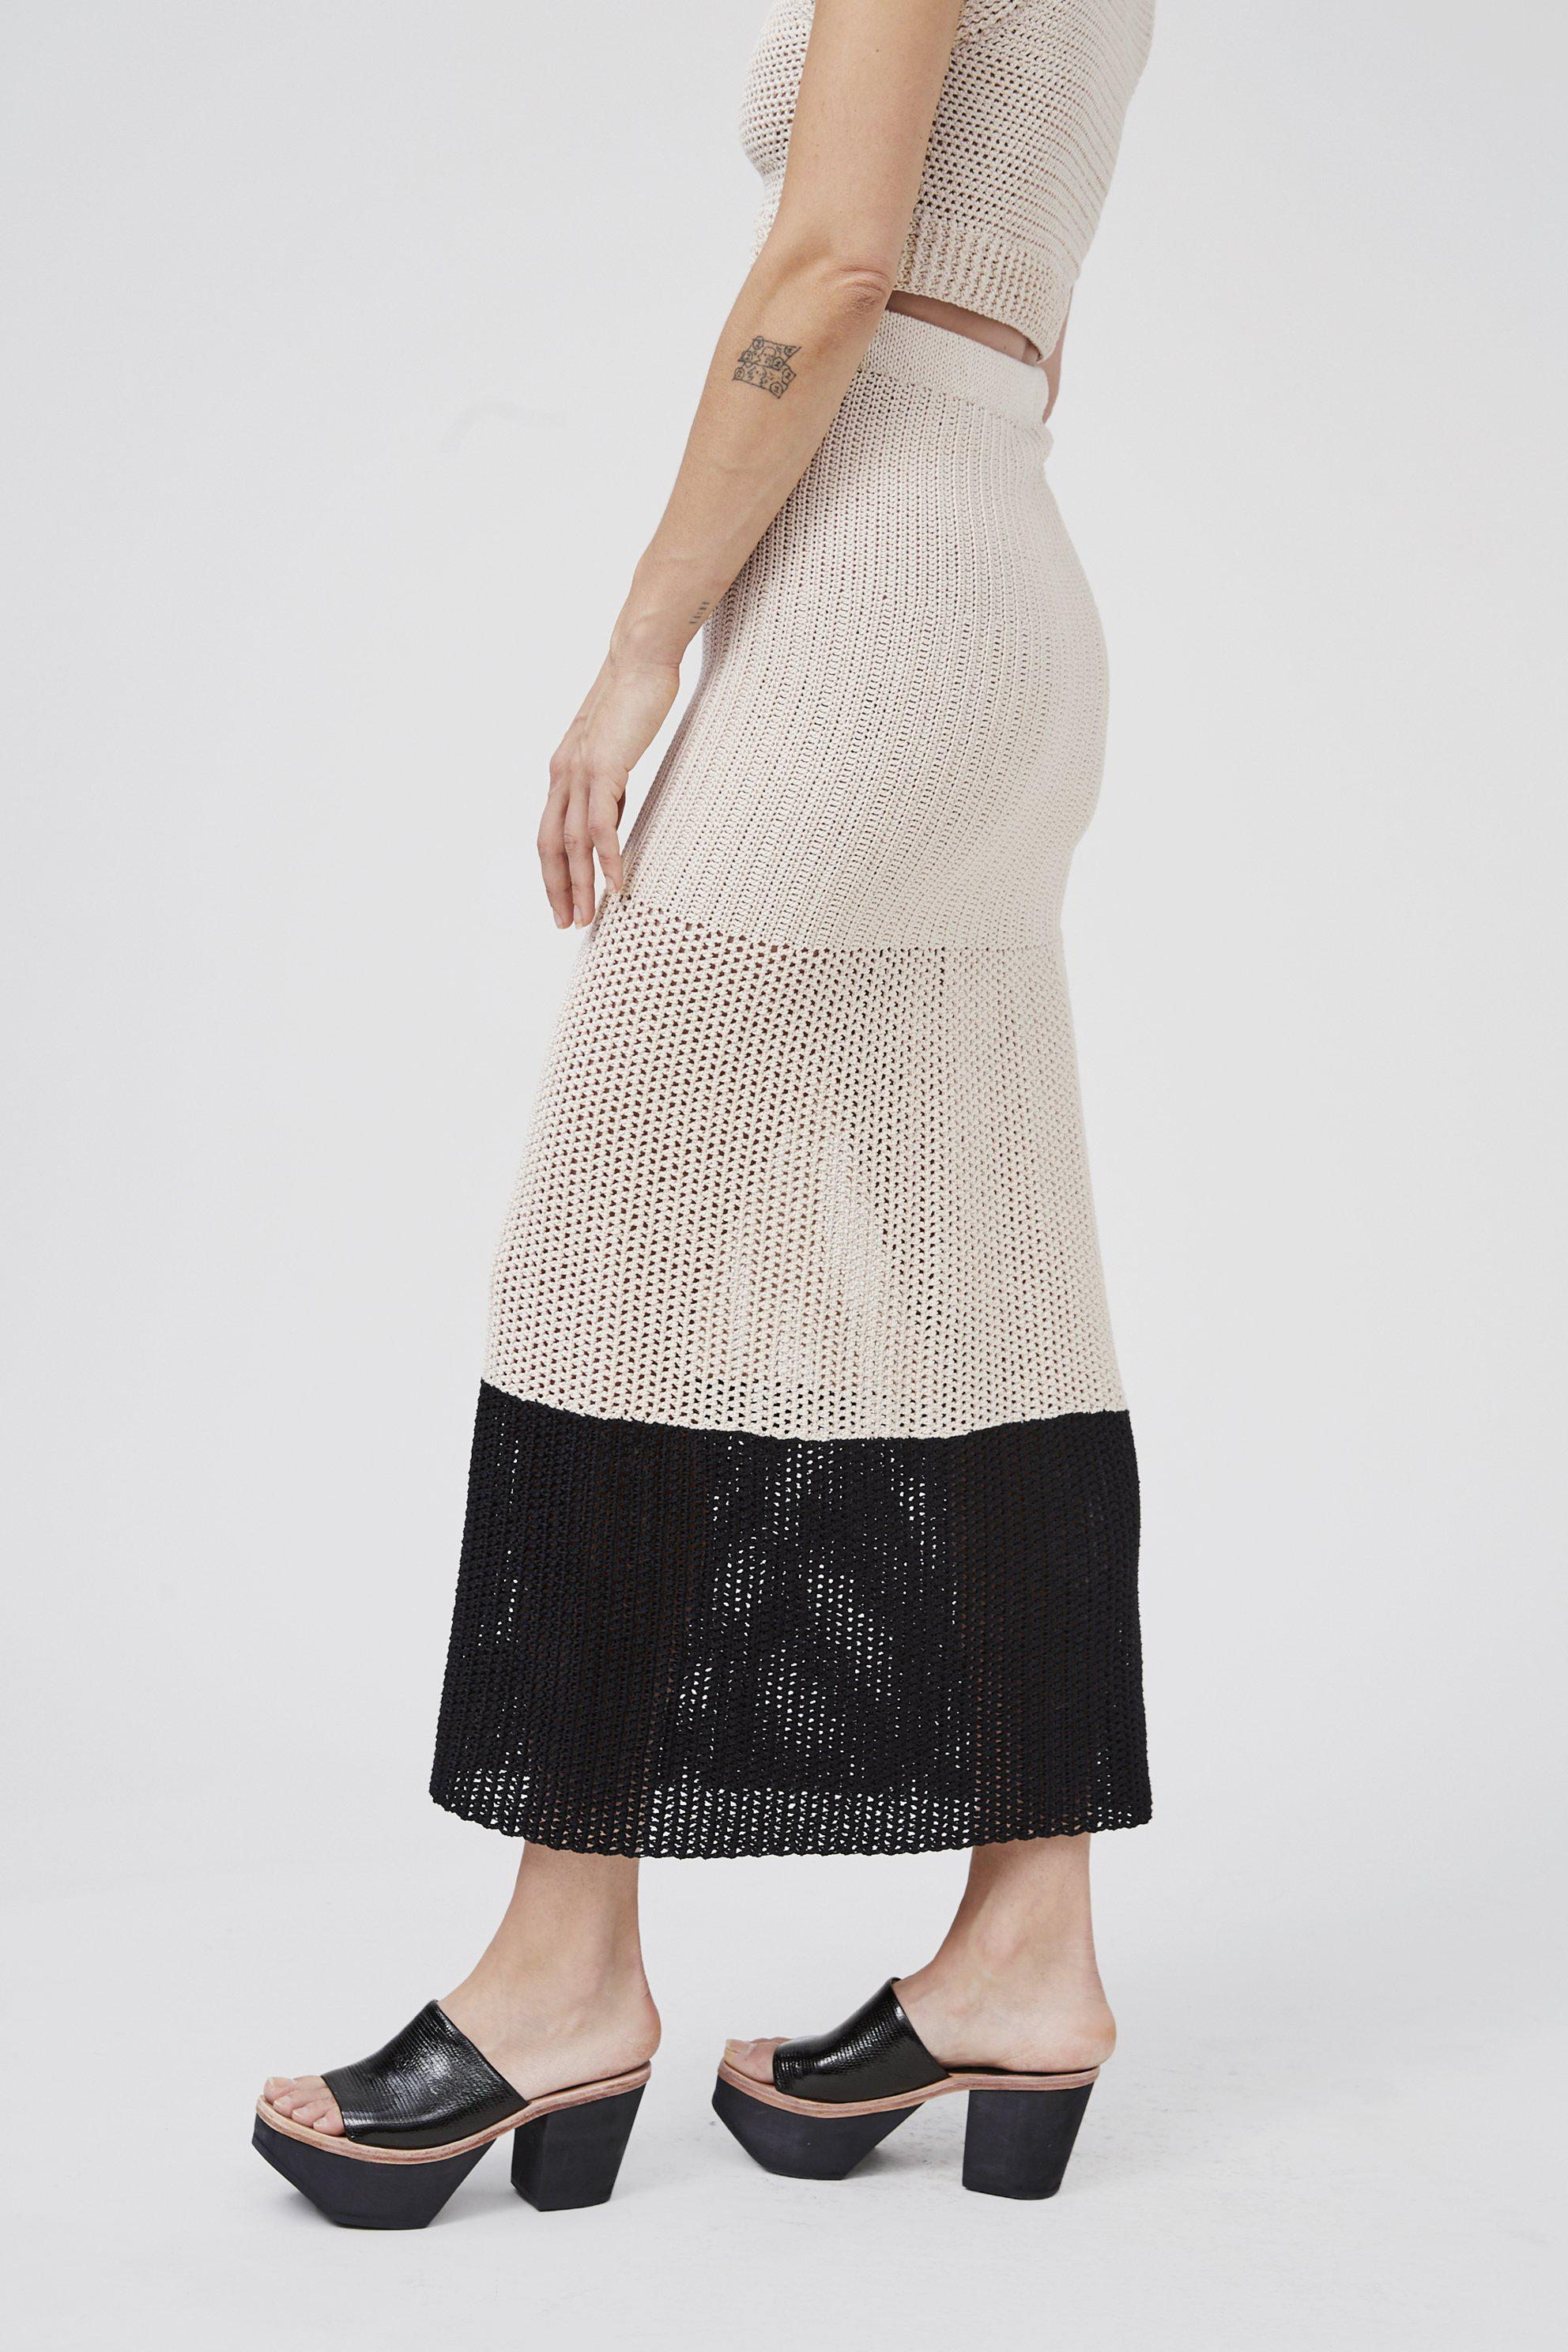 Acquire Skirt 2